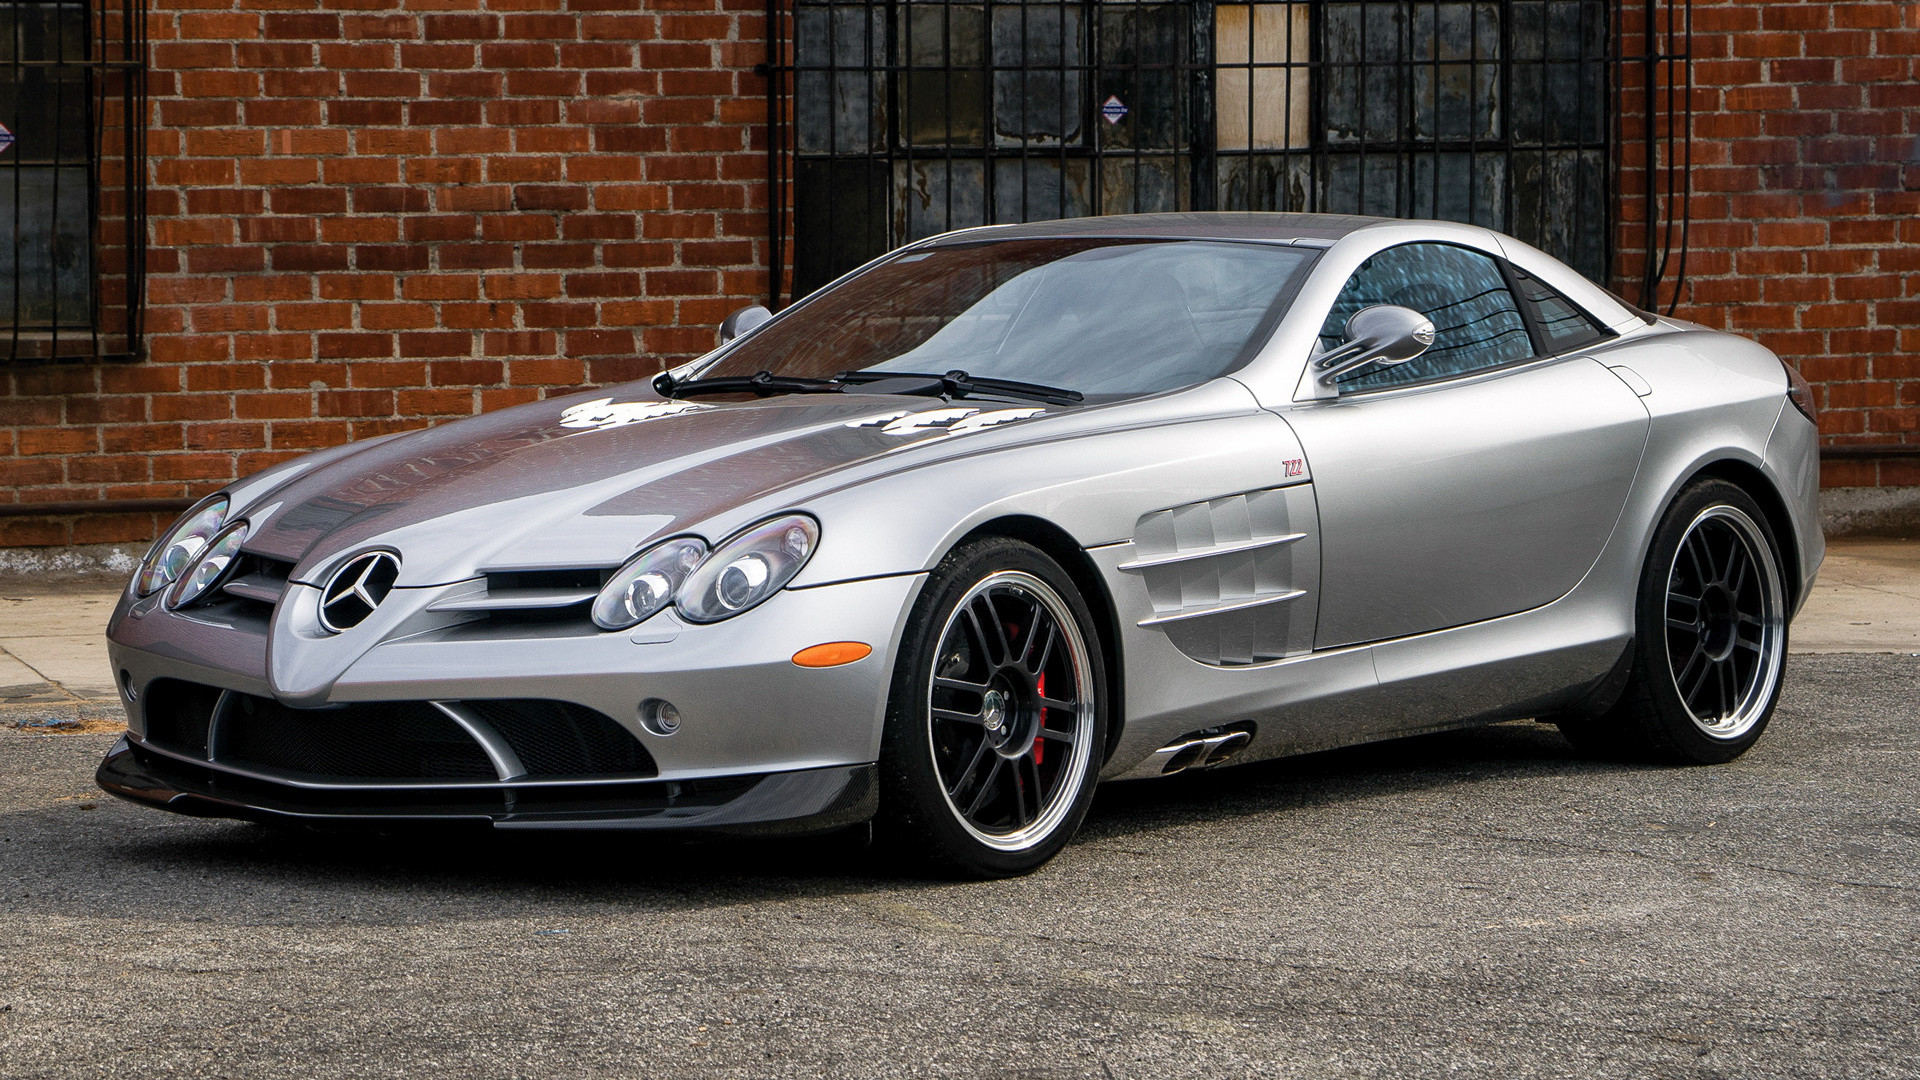 mercedes benz slr mclaren wallpaper 62 images. Black Bedroom Furniture Sets. Home Design Ideas